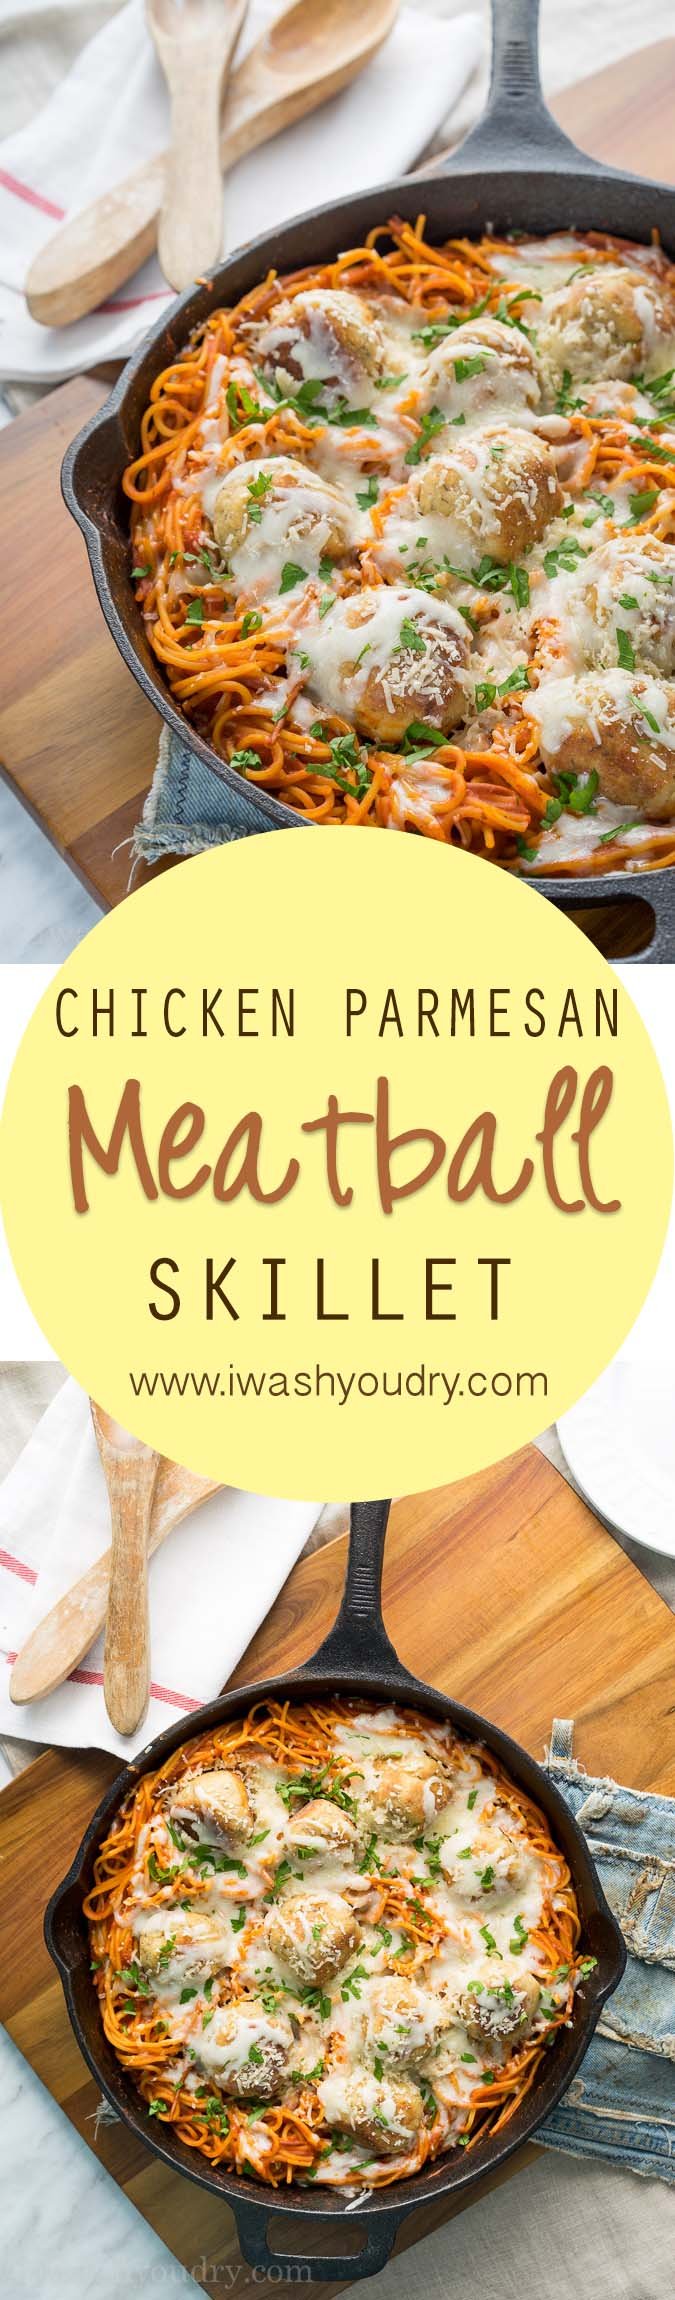 Such a fun twist on the classic! This Chicken Parmesan Meatball Skillet only uses one skillet for the whole dish! Even the pasta is cooked in there!